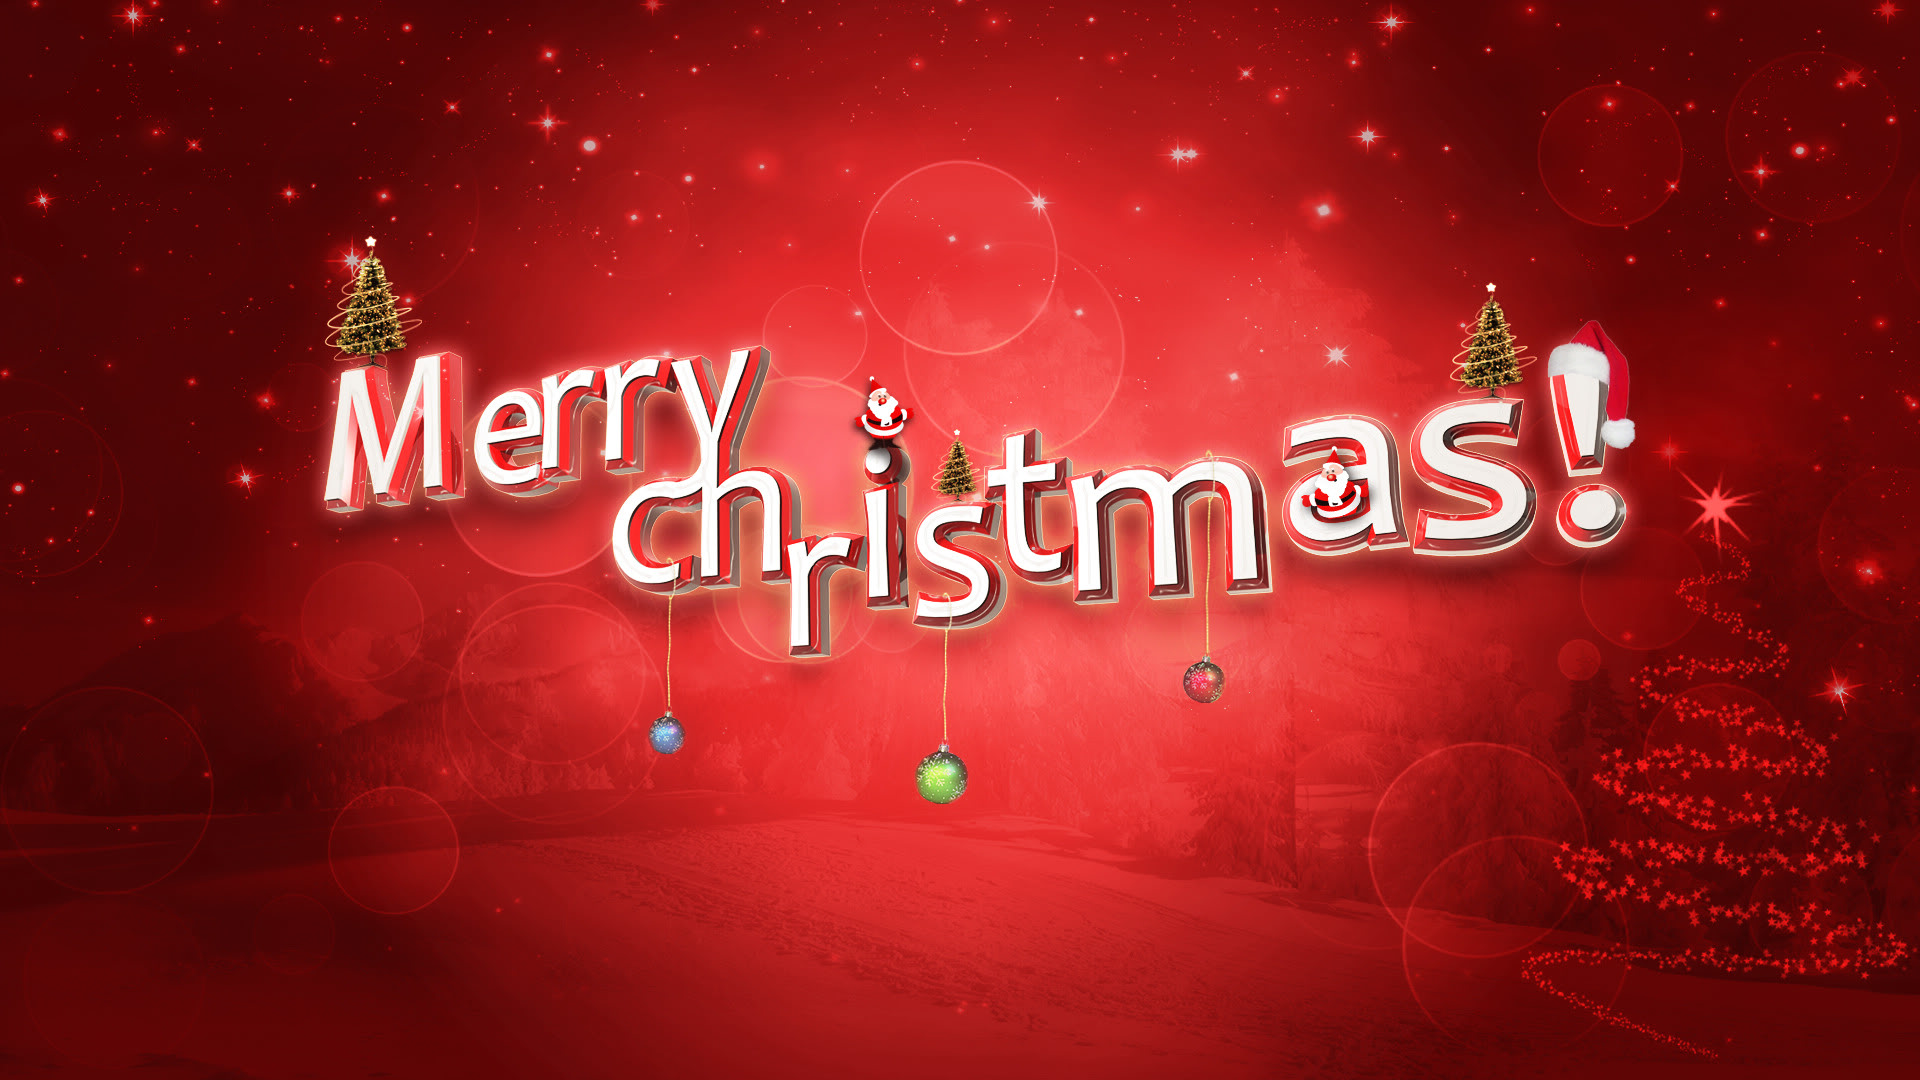 Best HD Merry Christmas 2016 Wallpapers For Your Desktop PC ...